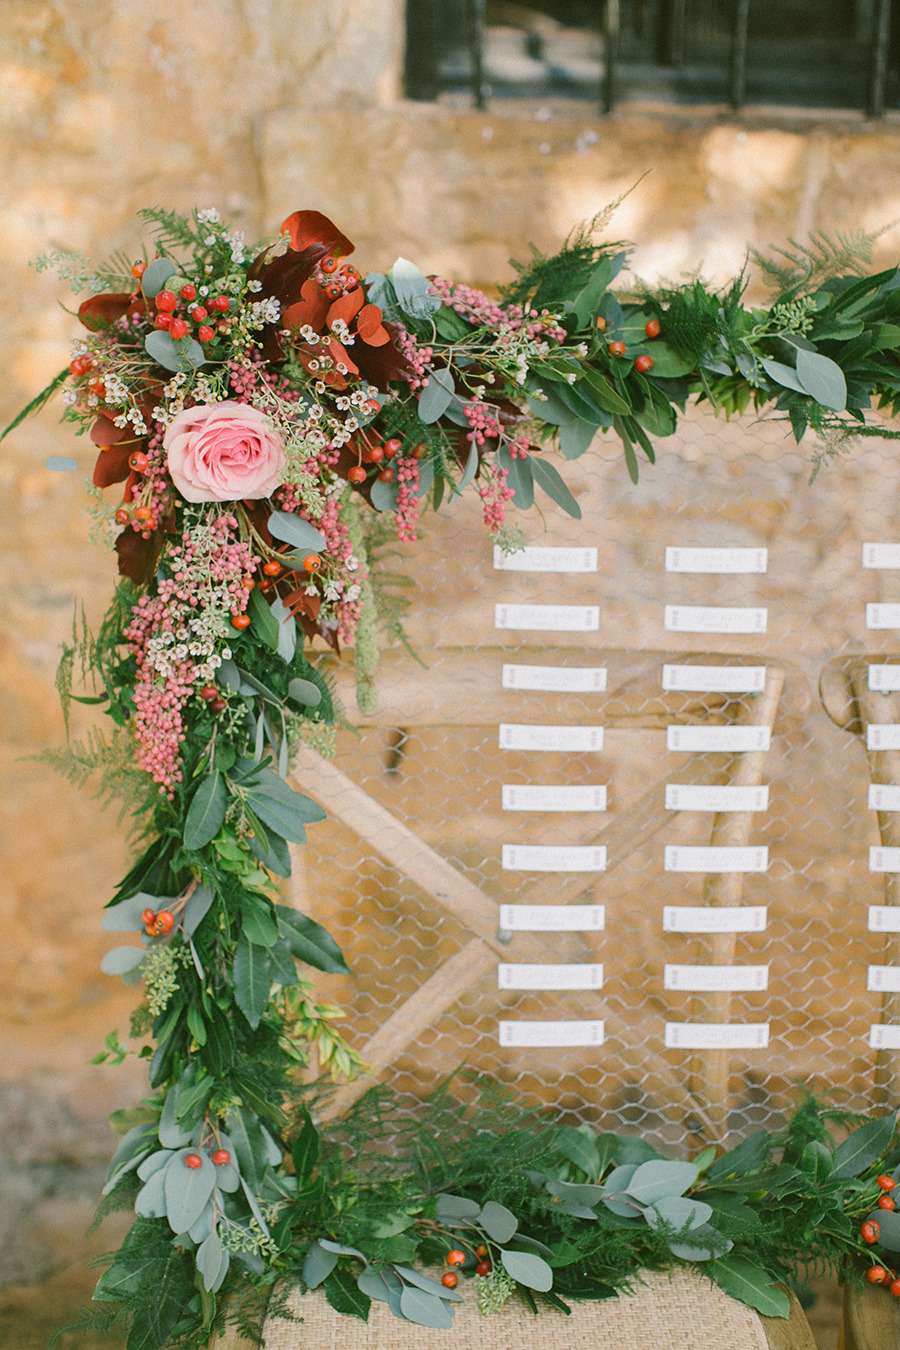 wedding escort cards - Boho Chic Wedding Inspiration Shoot from Anna Roussos Photography - annaroussos.com | Read more : https://www.fabmood.com/boho-chic-wedding-inspiration-shoot-anna-roussos-photography